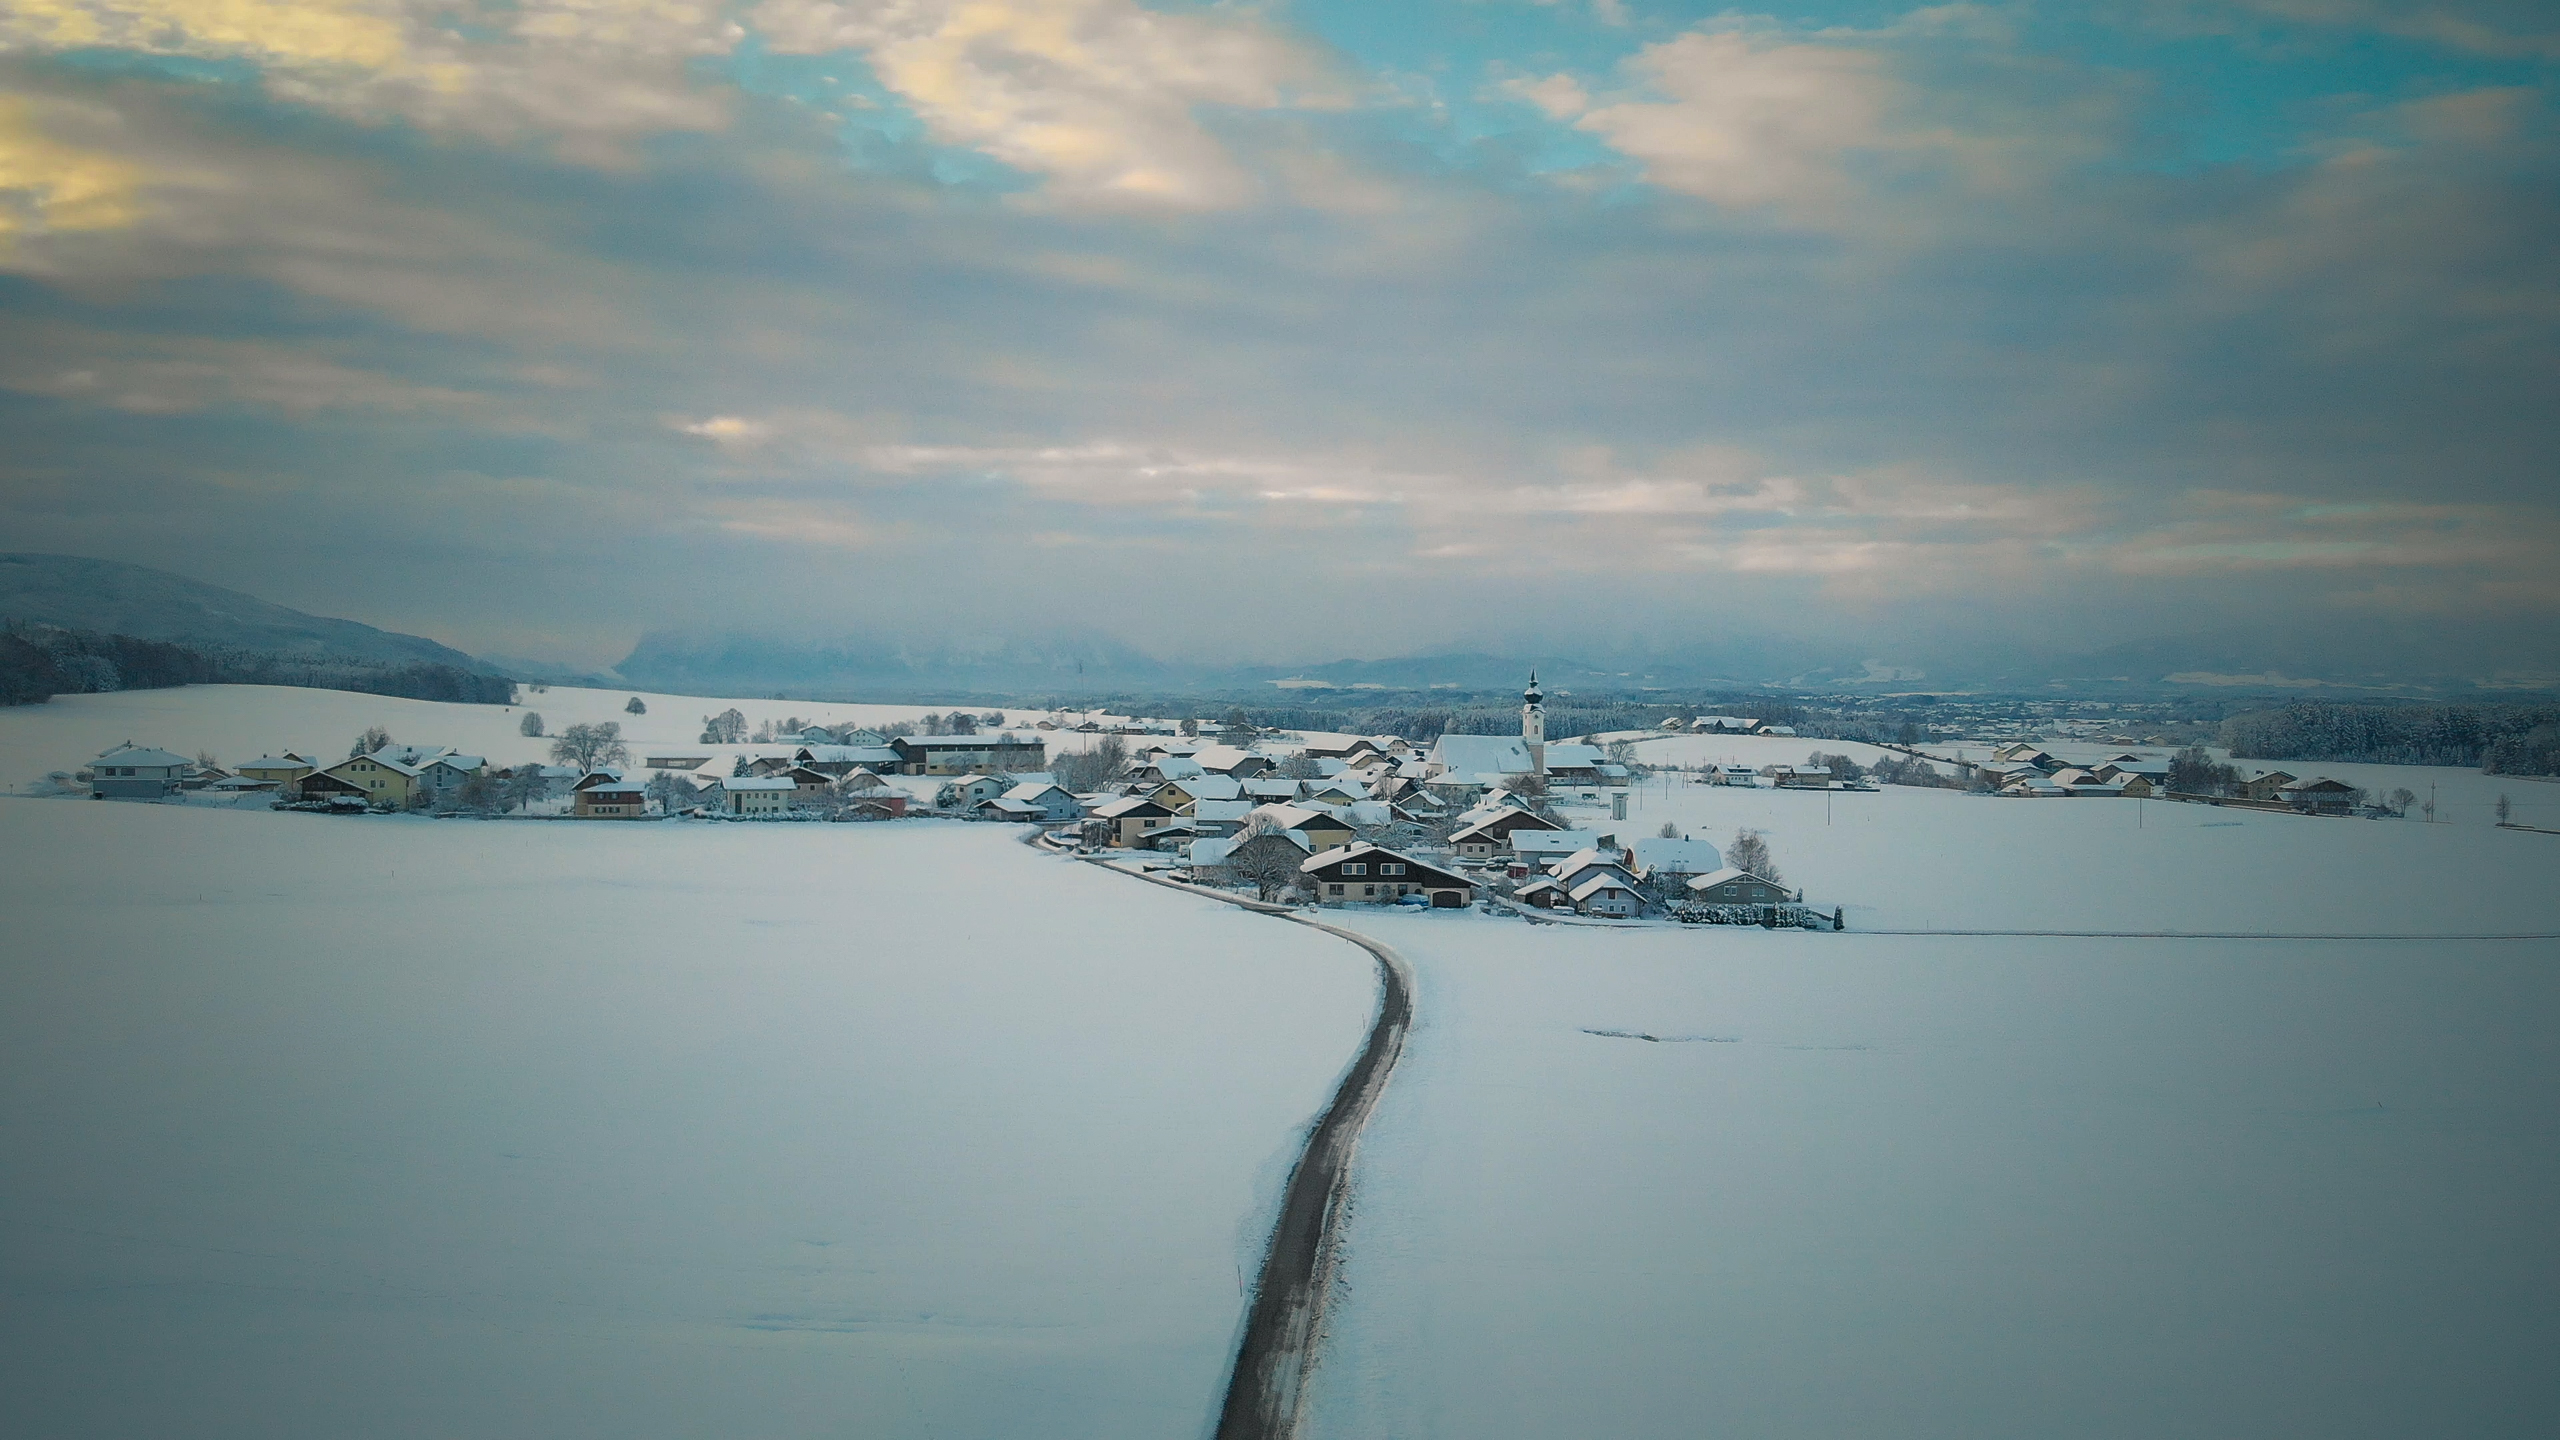 Arnsdorf_Winter2018-19_Screenshot_MichaelHerzog-10.jpg